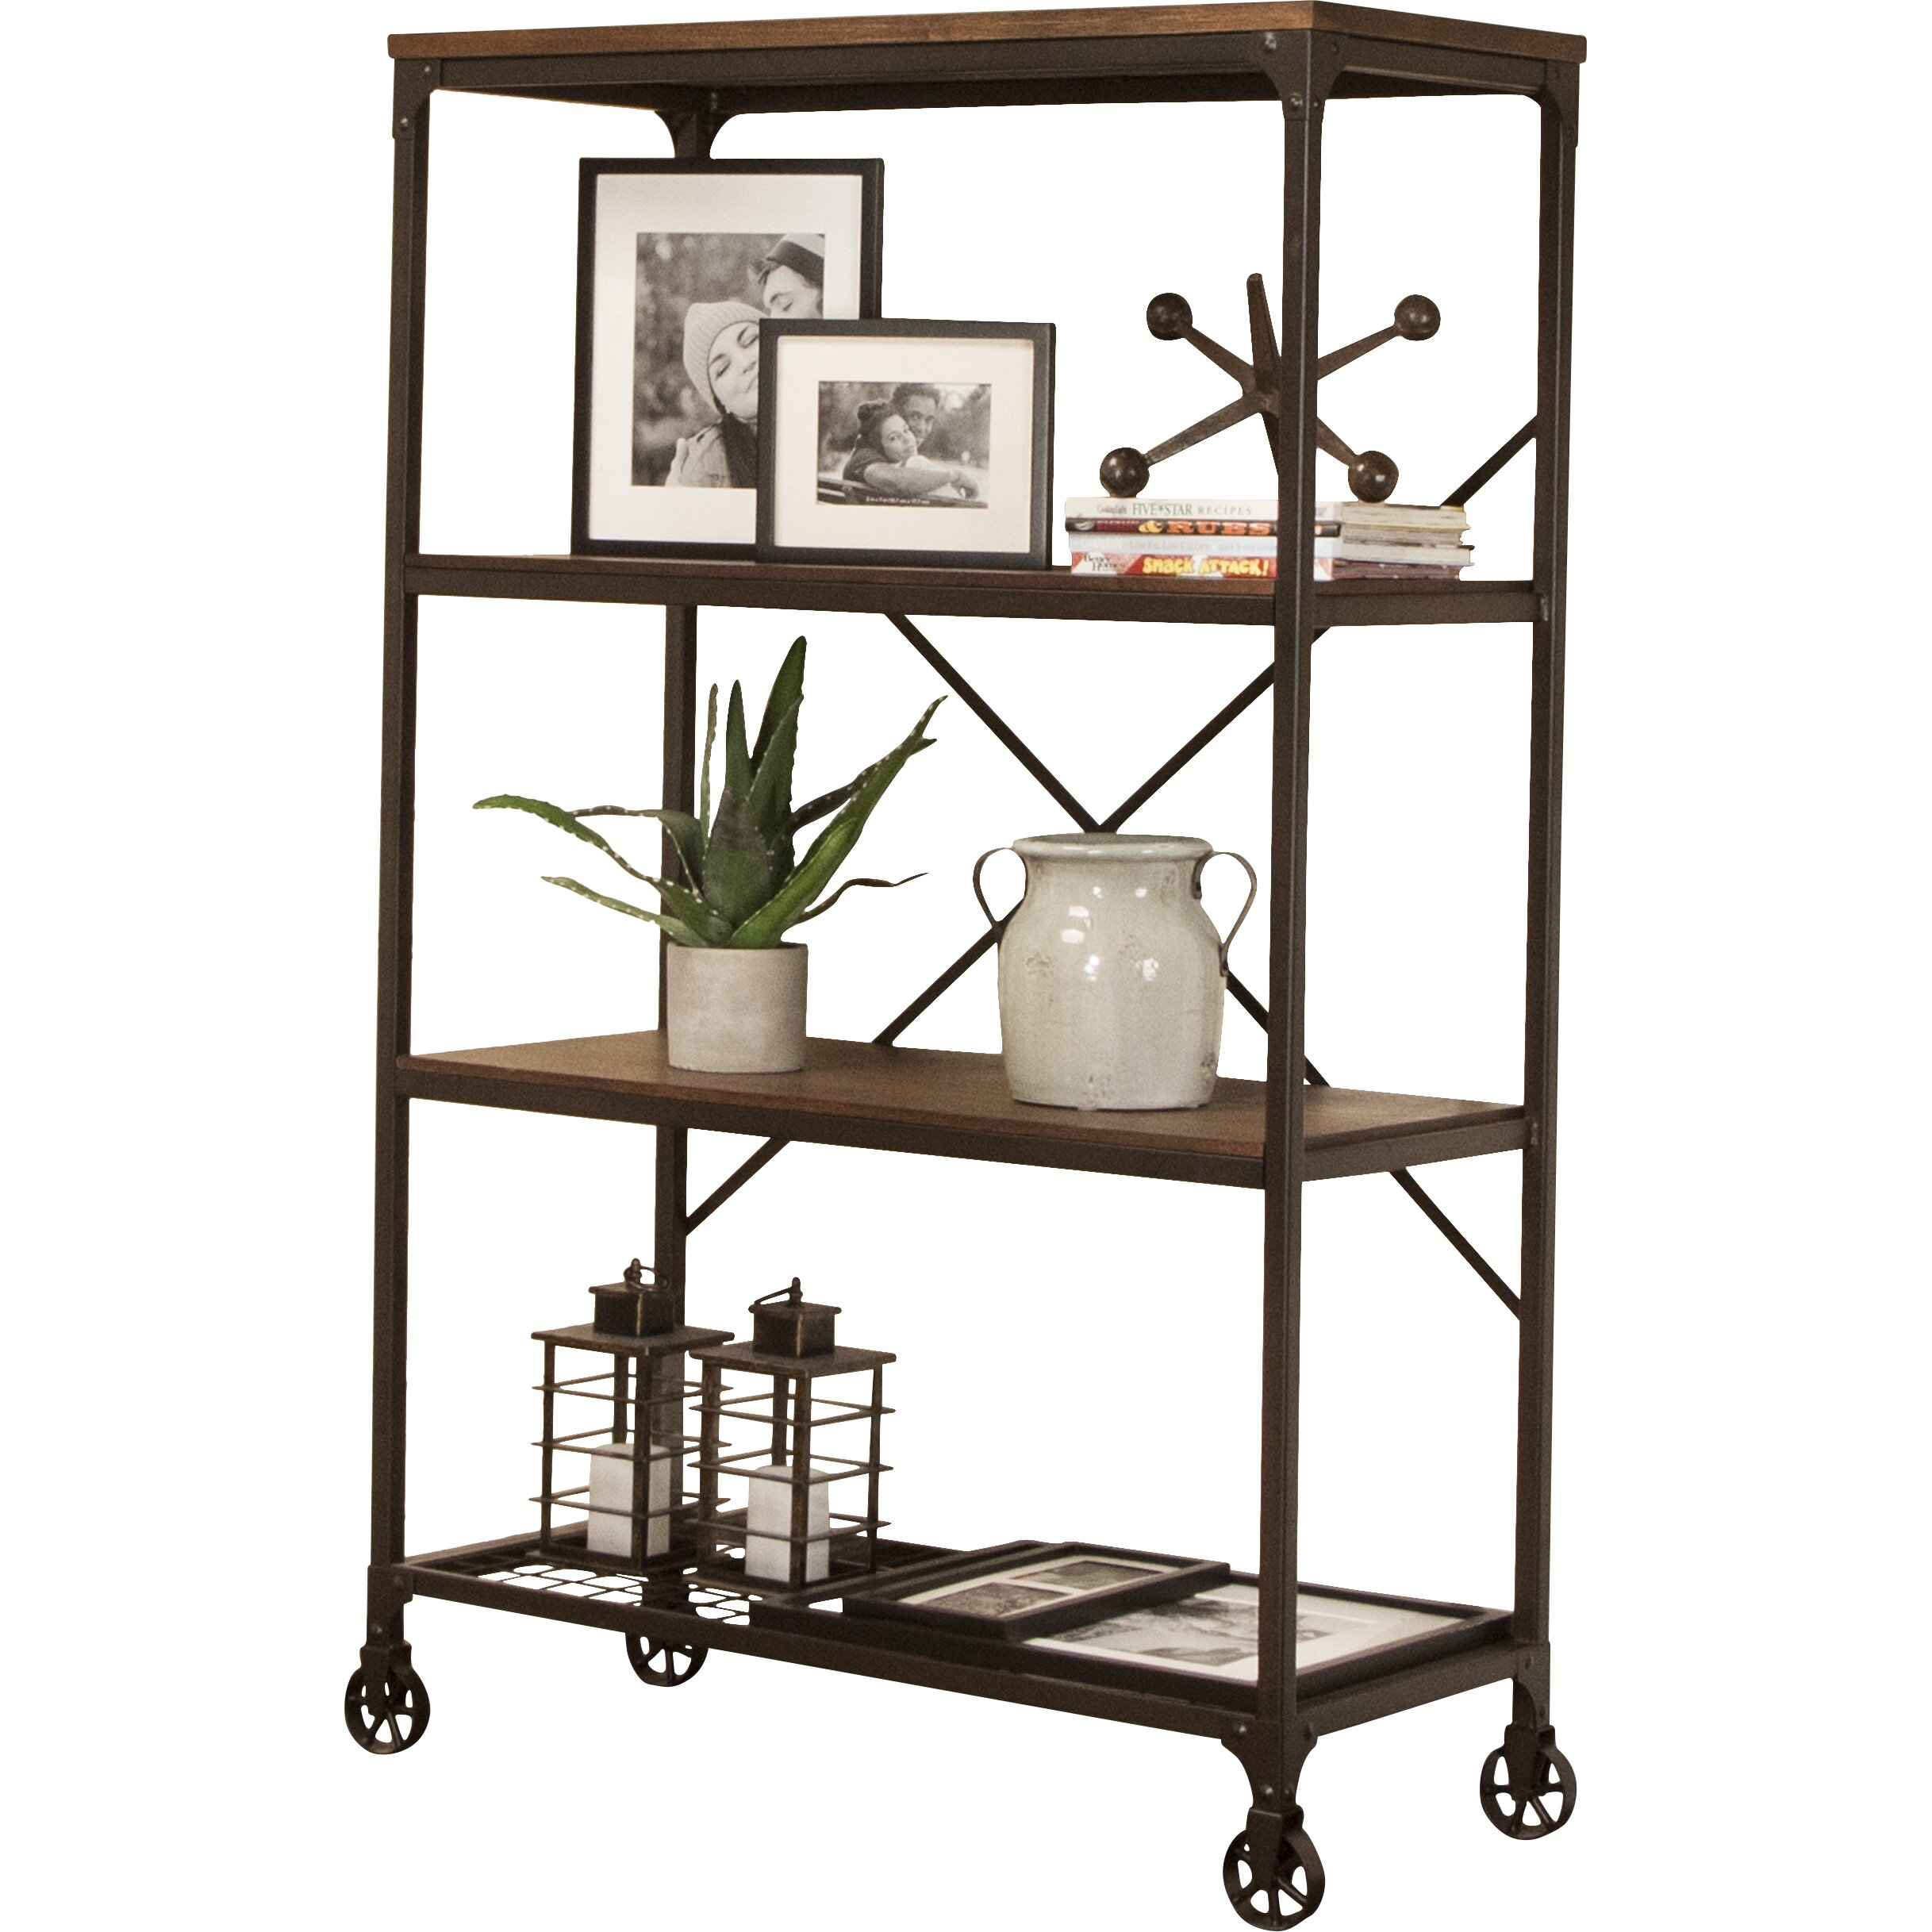 trent austin design chelles 63 etagere bookcase wayfair supply. Black Bedroom Furniture Sets. Home Design Ideas